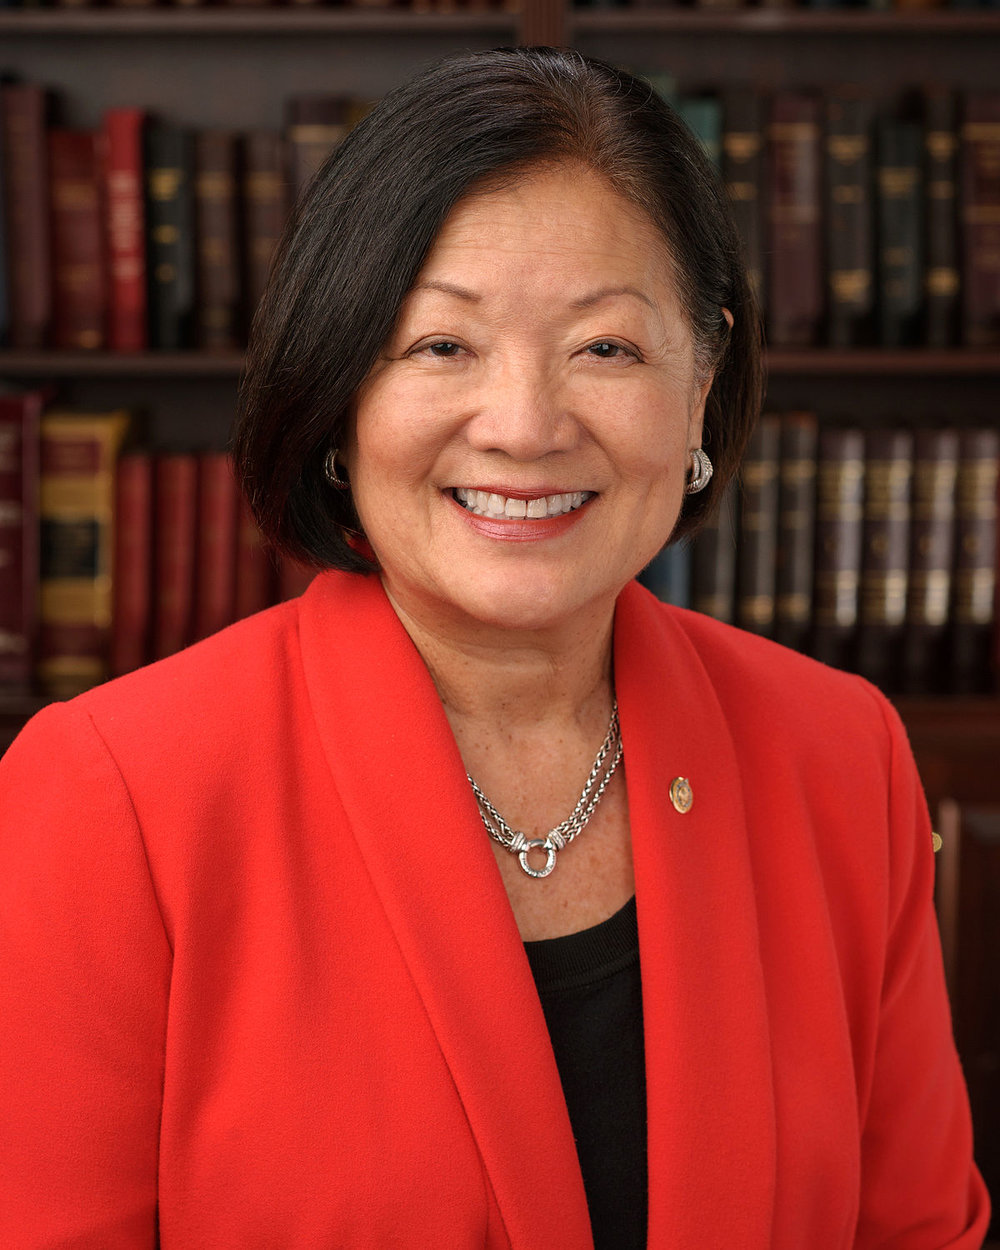 Mazie Hirono - First Asian-American woman, first Buddhist, and first Japanese-born American to be elected to the Senate